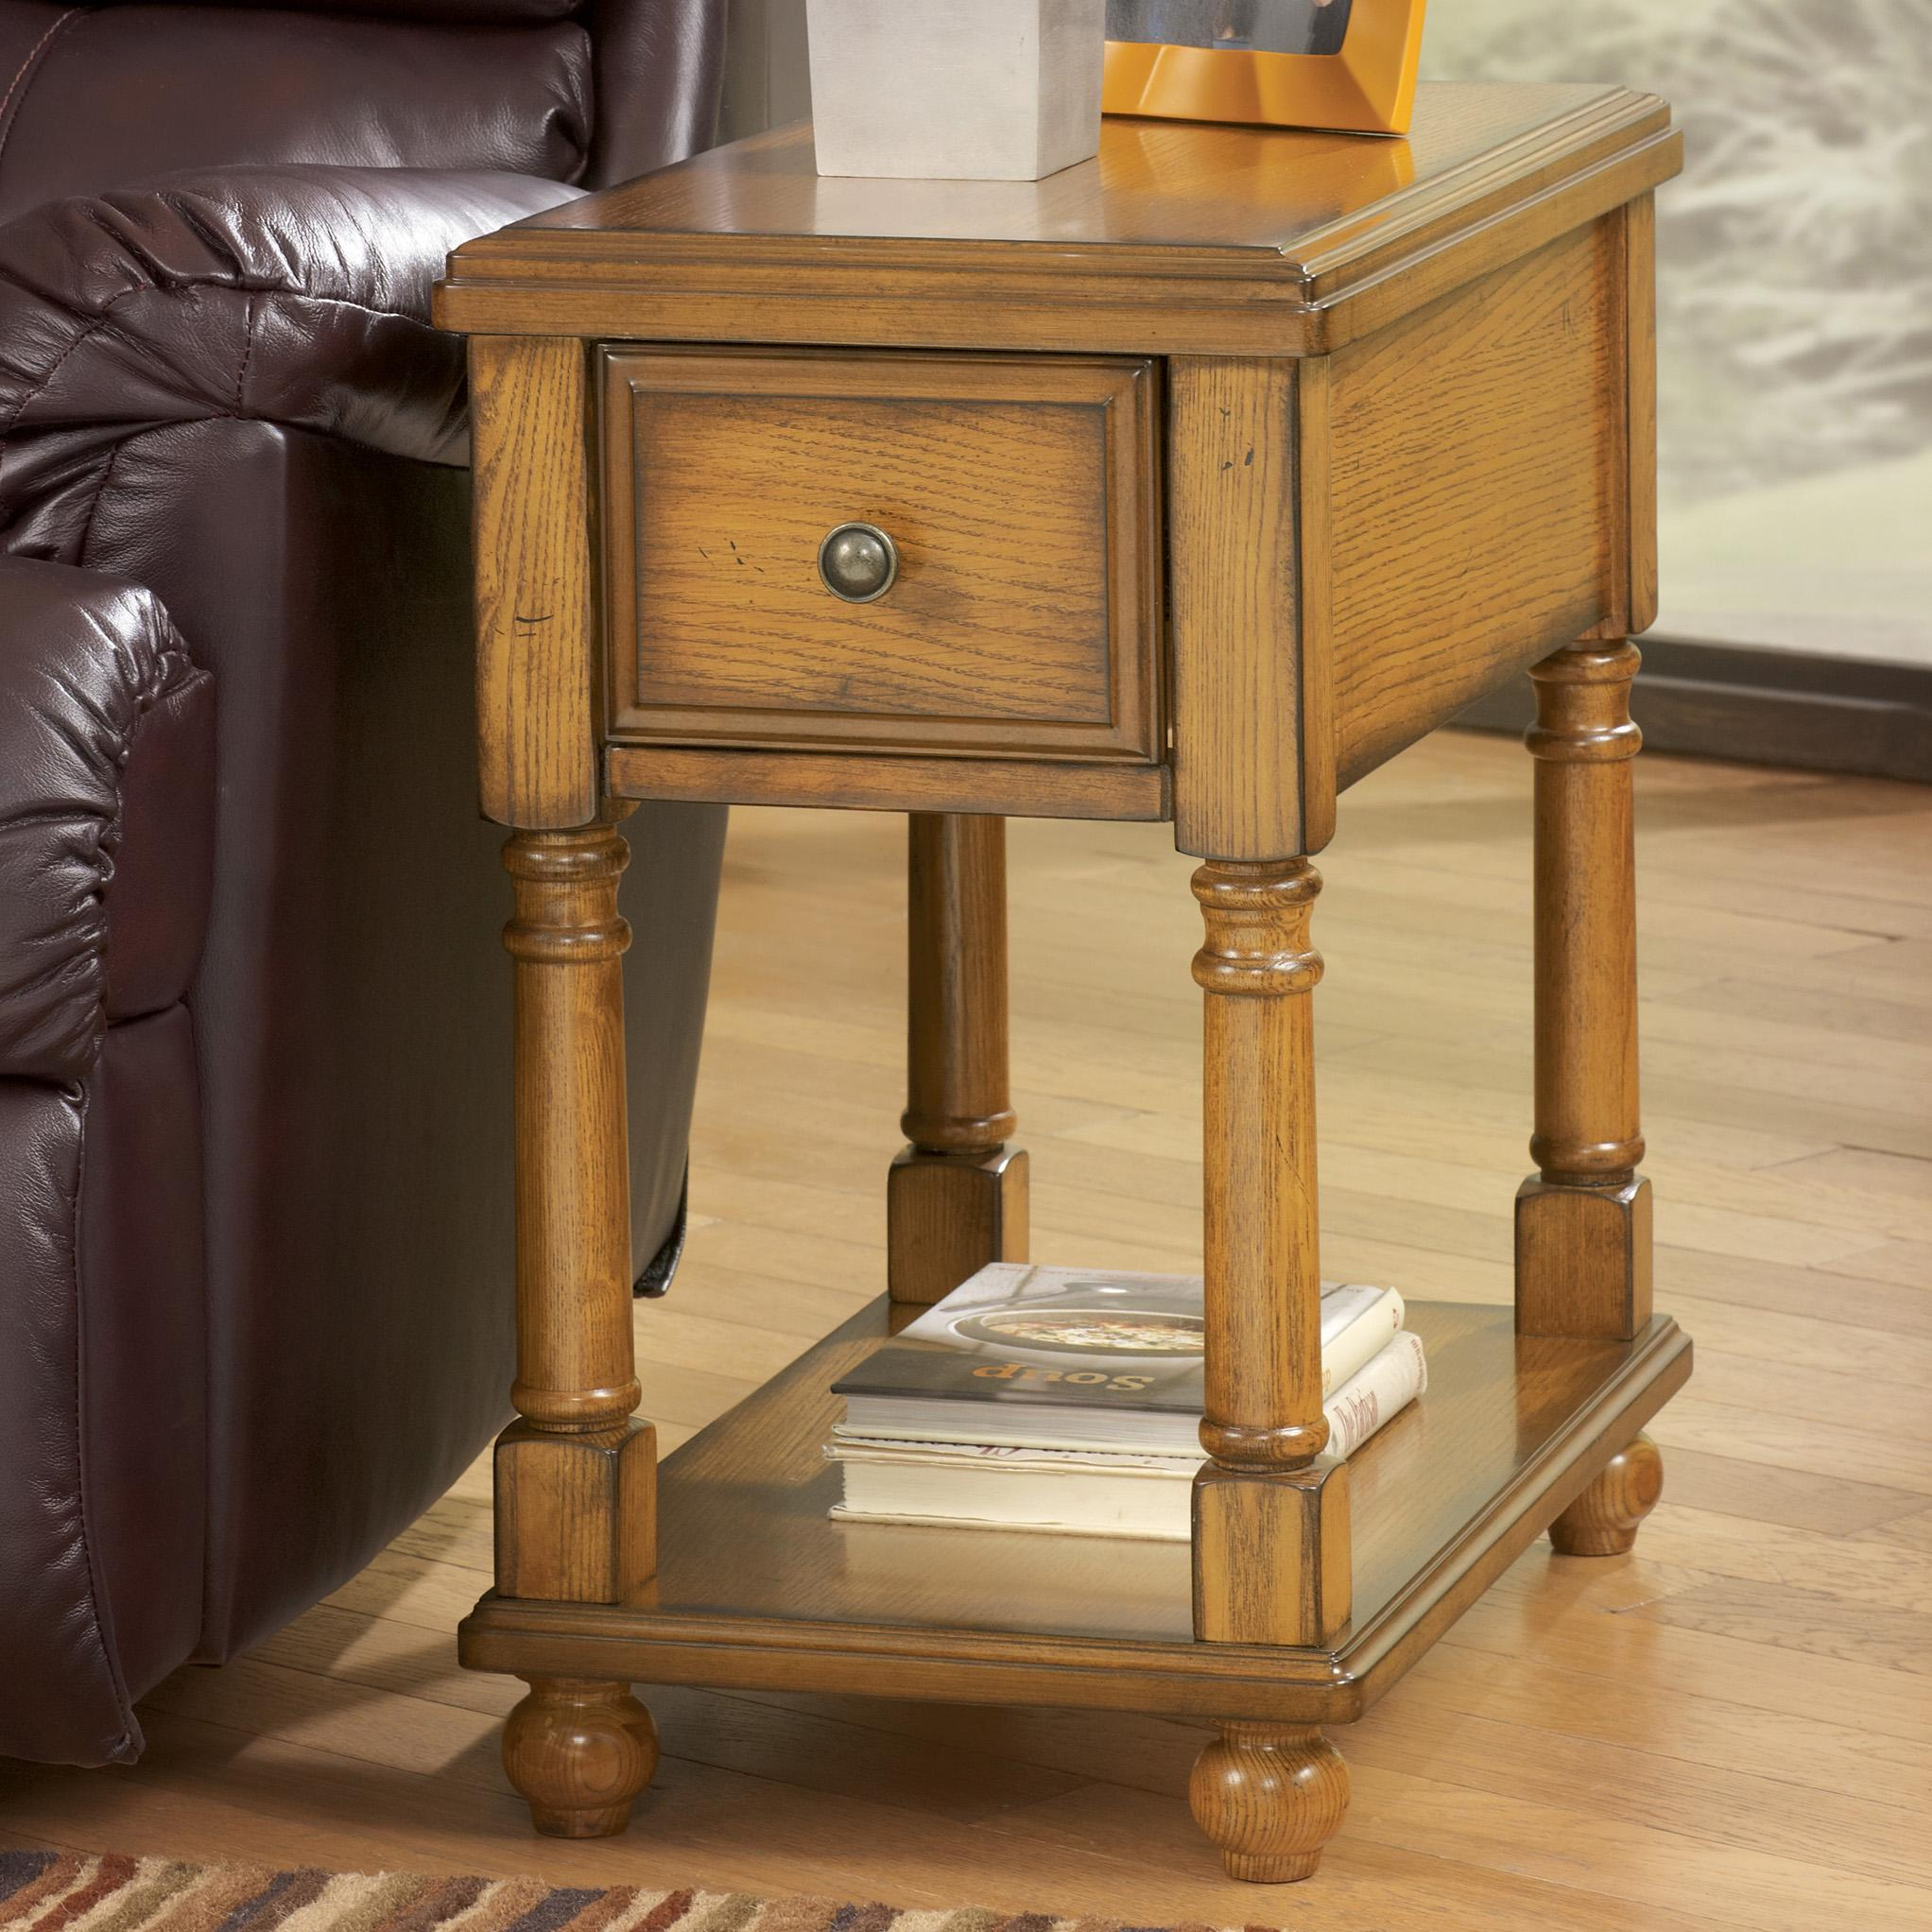 Signature Design by Ashley Breegin Chairside End Table - Item Number: T007-430